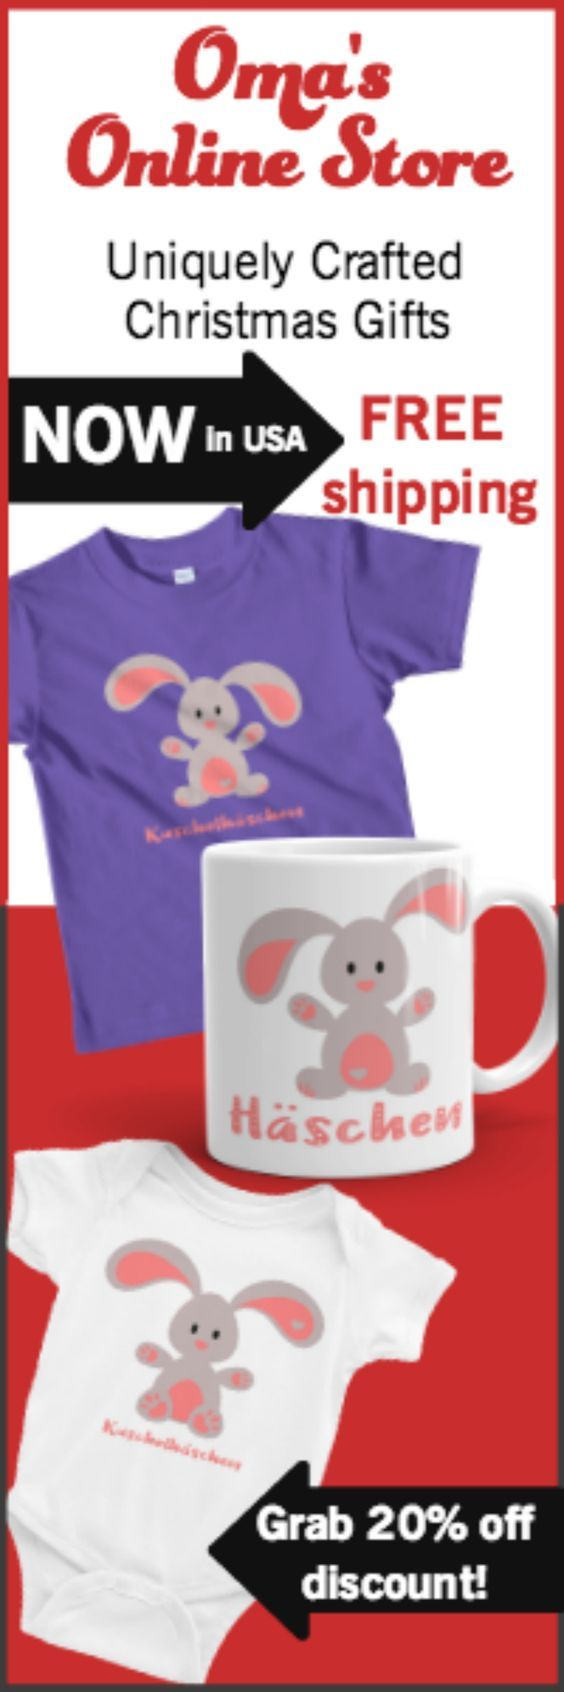 A sweet cuddly bunny adorns the mug, the baby onesie, and the kid's t-shirt. Perfect gifts for anytime, but especially Easter! KUSCHELHÄSCHEN means cuddly bunny in German and is a perfect gift for an Oma and Opa to give to their little ones. The mug is perfect for your sweetie as well ❤️